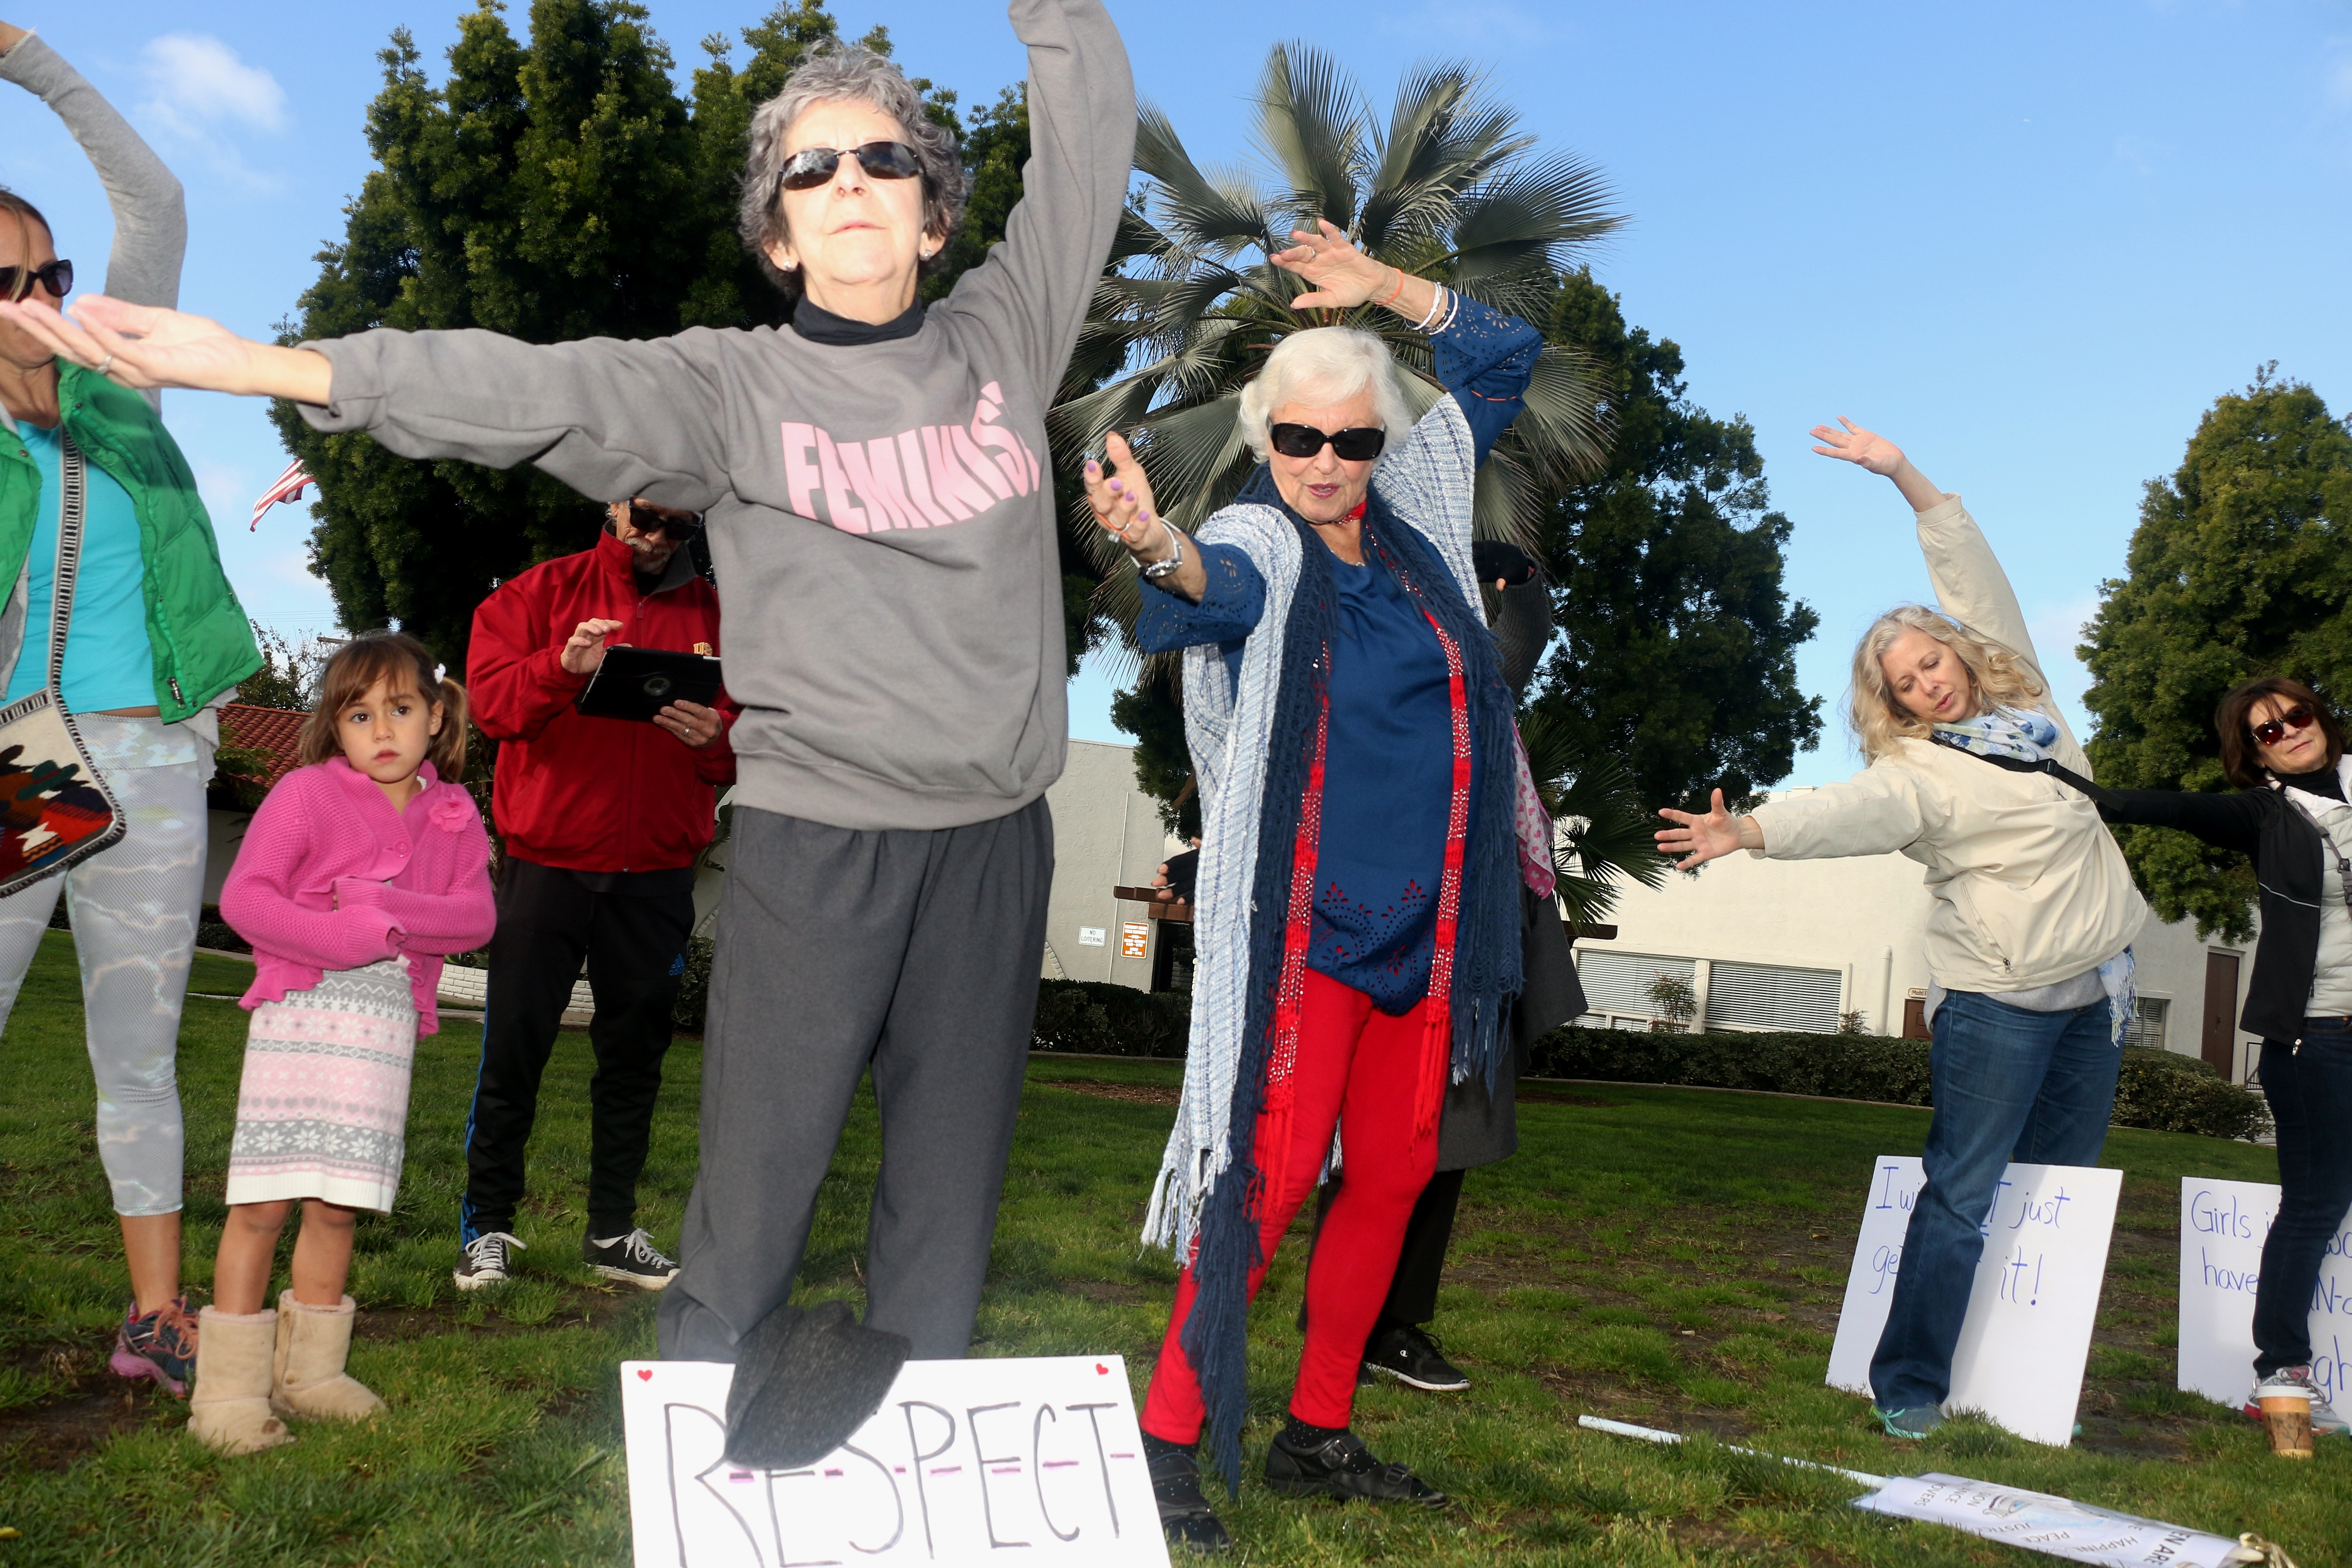 Tias Hoffman, standing center in a blue shirt and red pants, leads marchers through warm-up tai chi exercises on Saturday, Jan. 21, at the San Clemente Community Center. Hoffman organized the San Clemente march. Photo: Eric Heinz